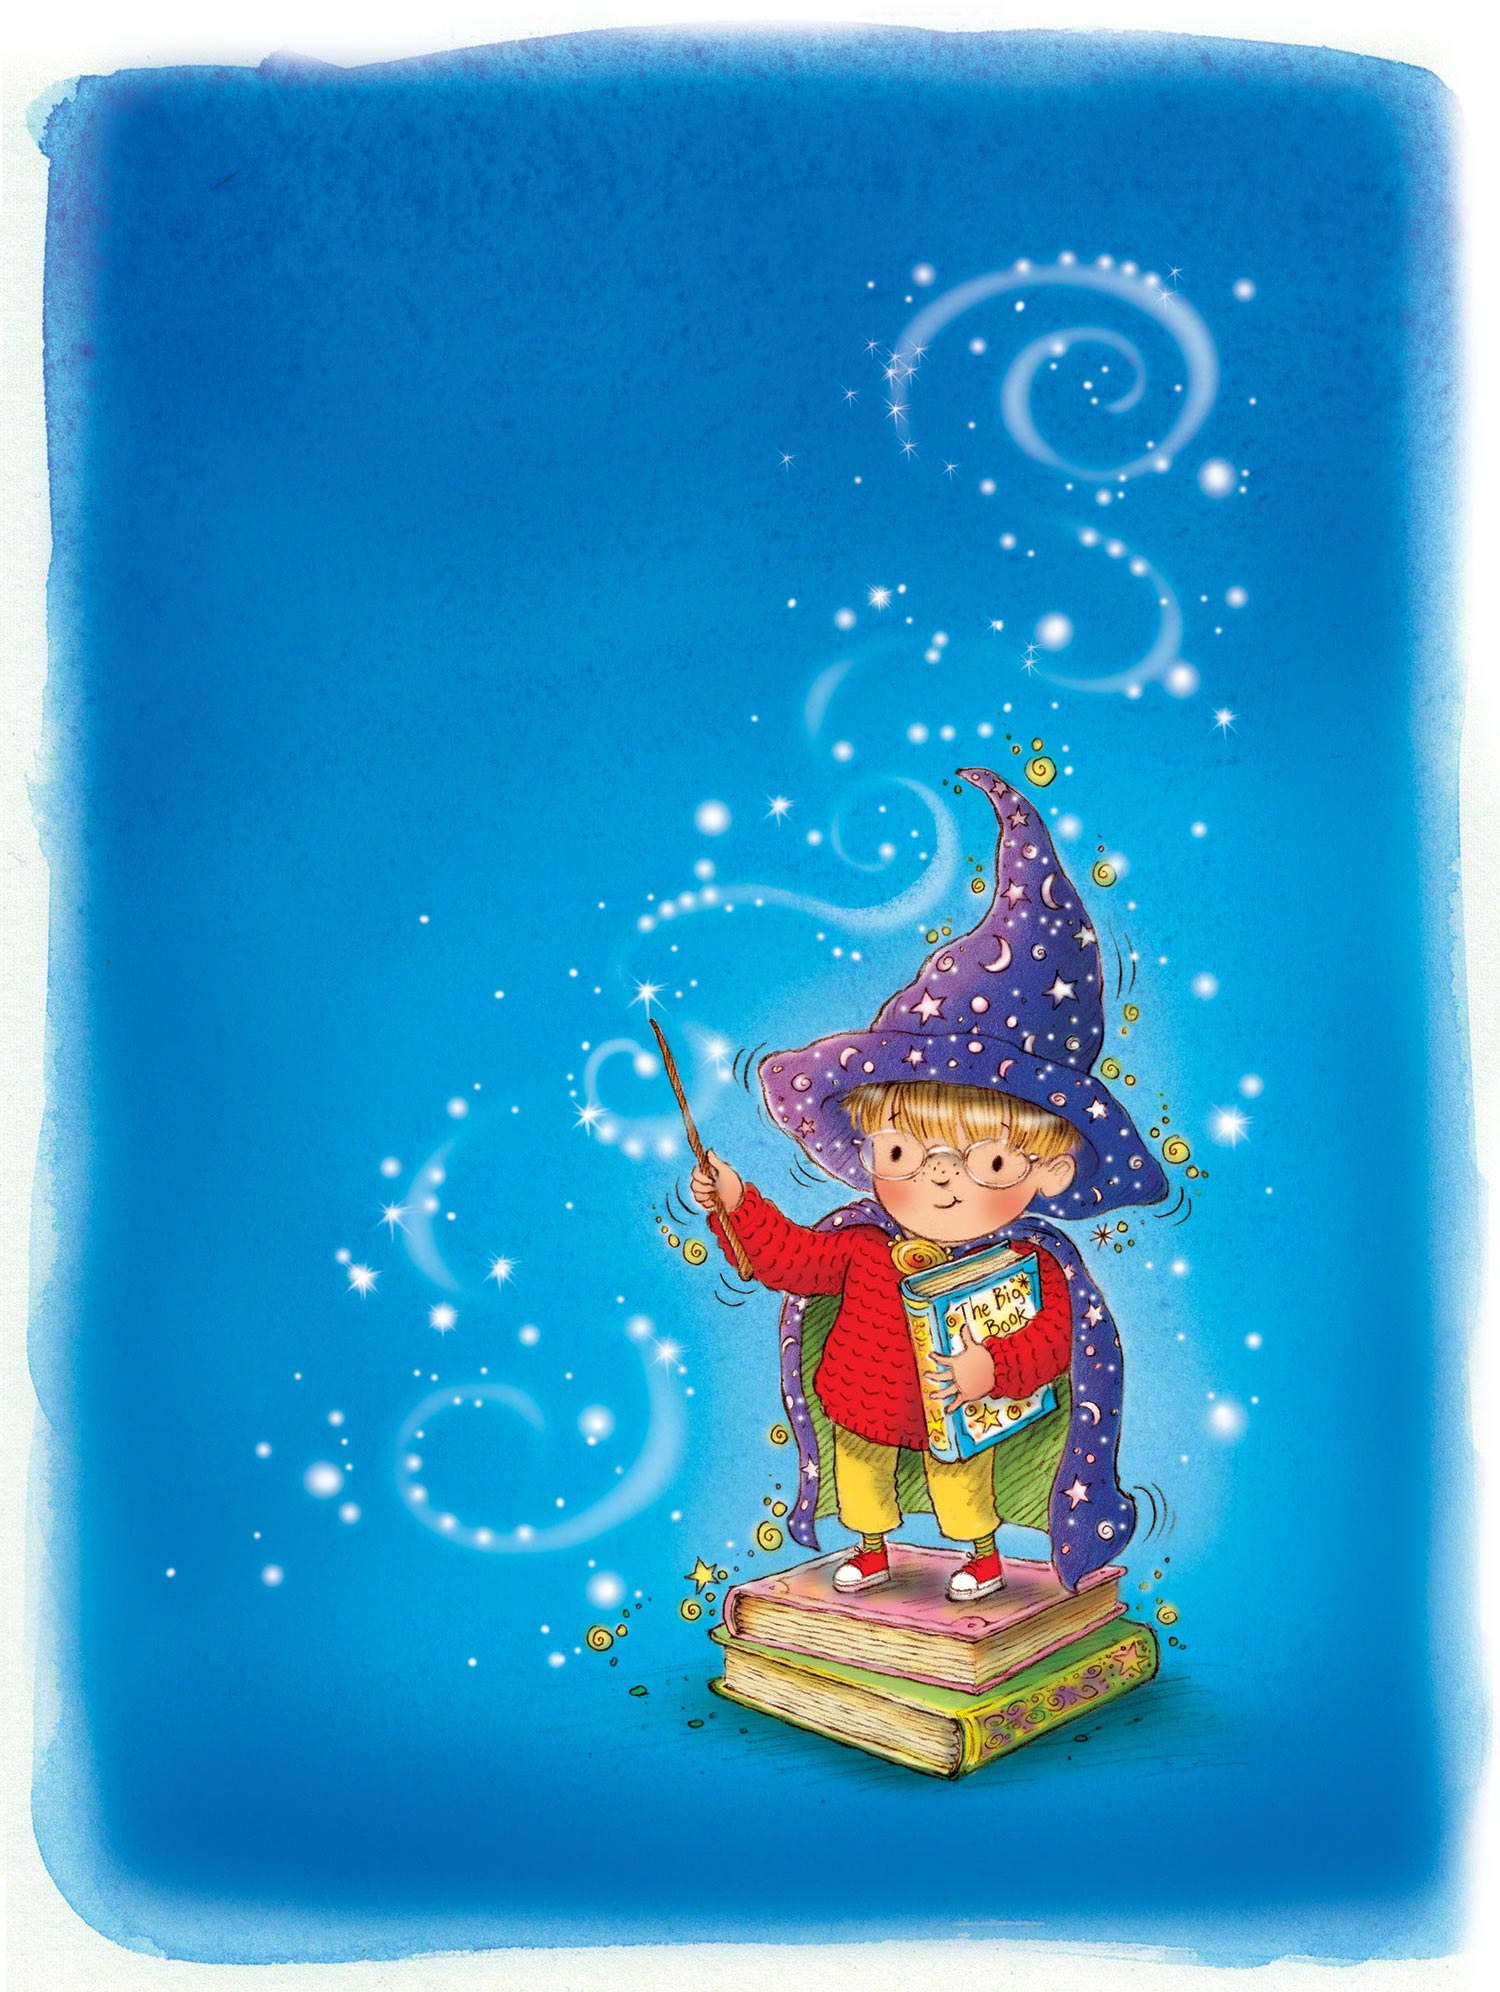 the-little-sorcerer-front-with-bg-copy